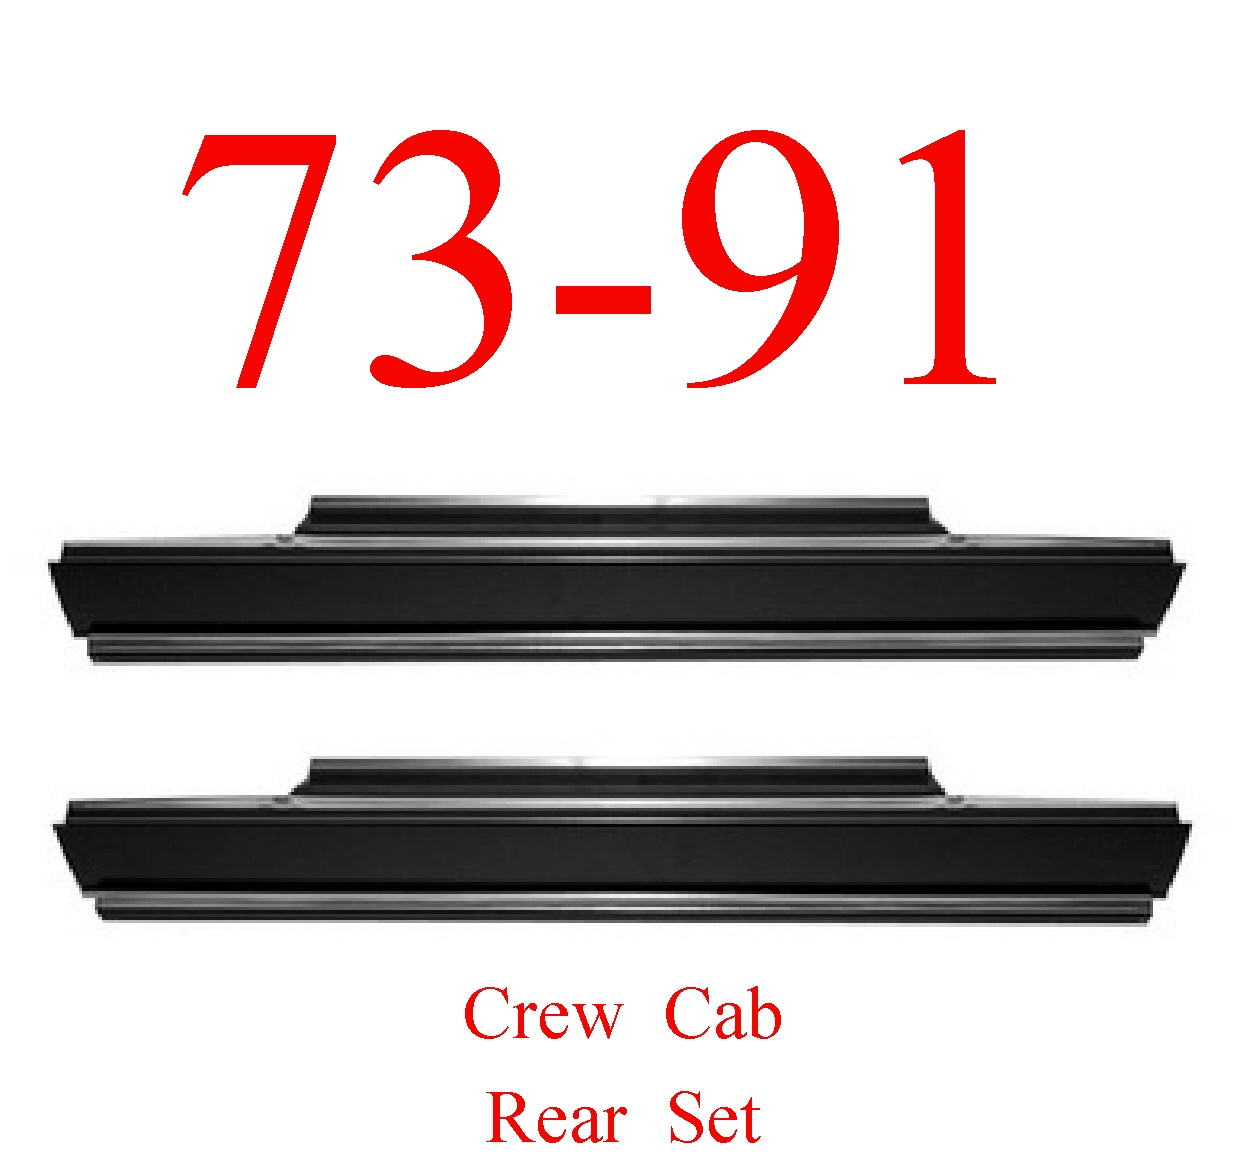 73-91 Chevy Crew Cab Rear Slip-On Rocker Set